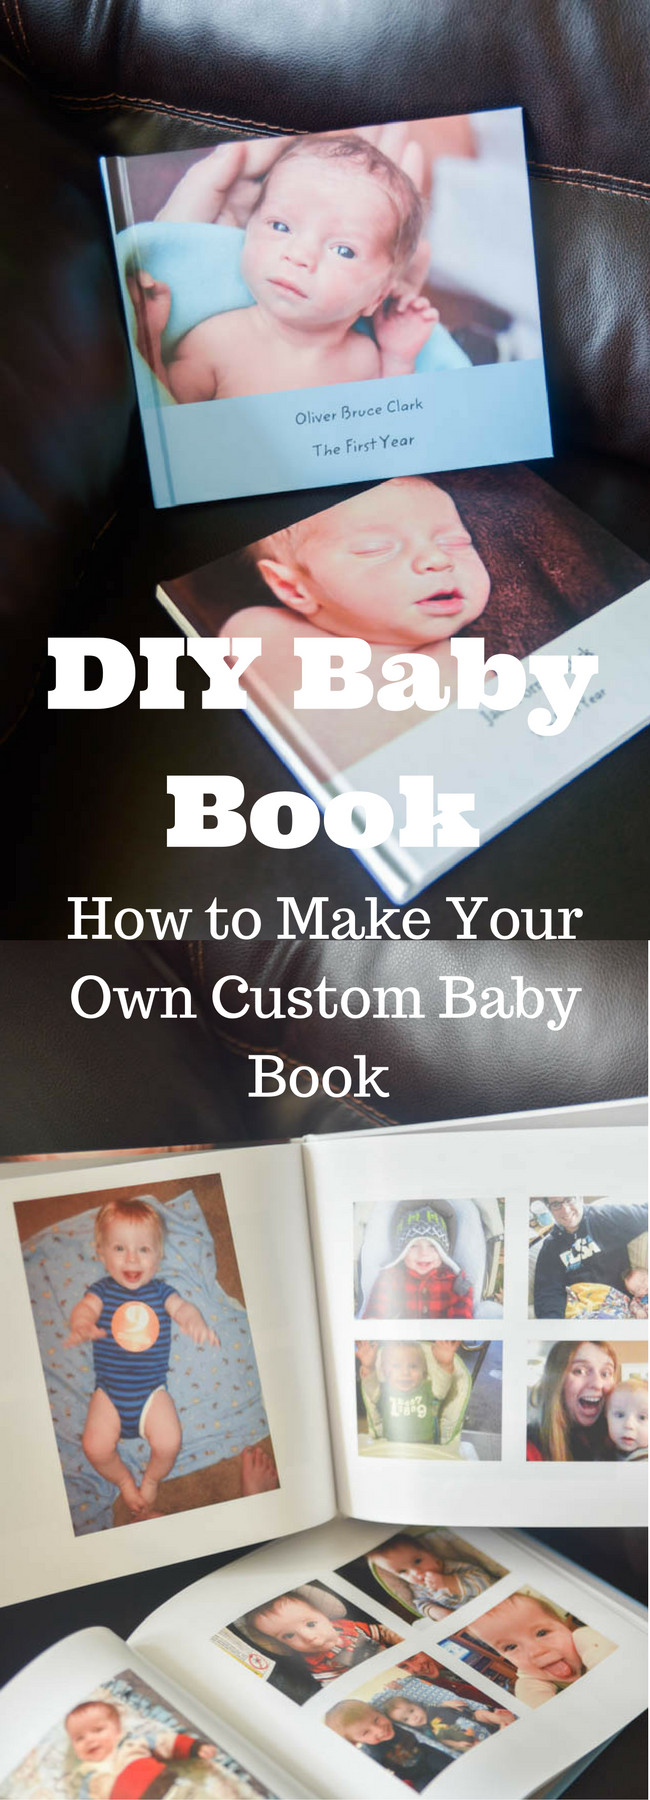 Best ideas about DIY Baby Book . Save or Pin Make Your Own Baby Book DIY Baby Book Now.